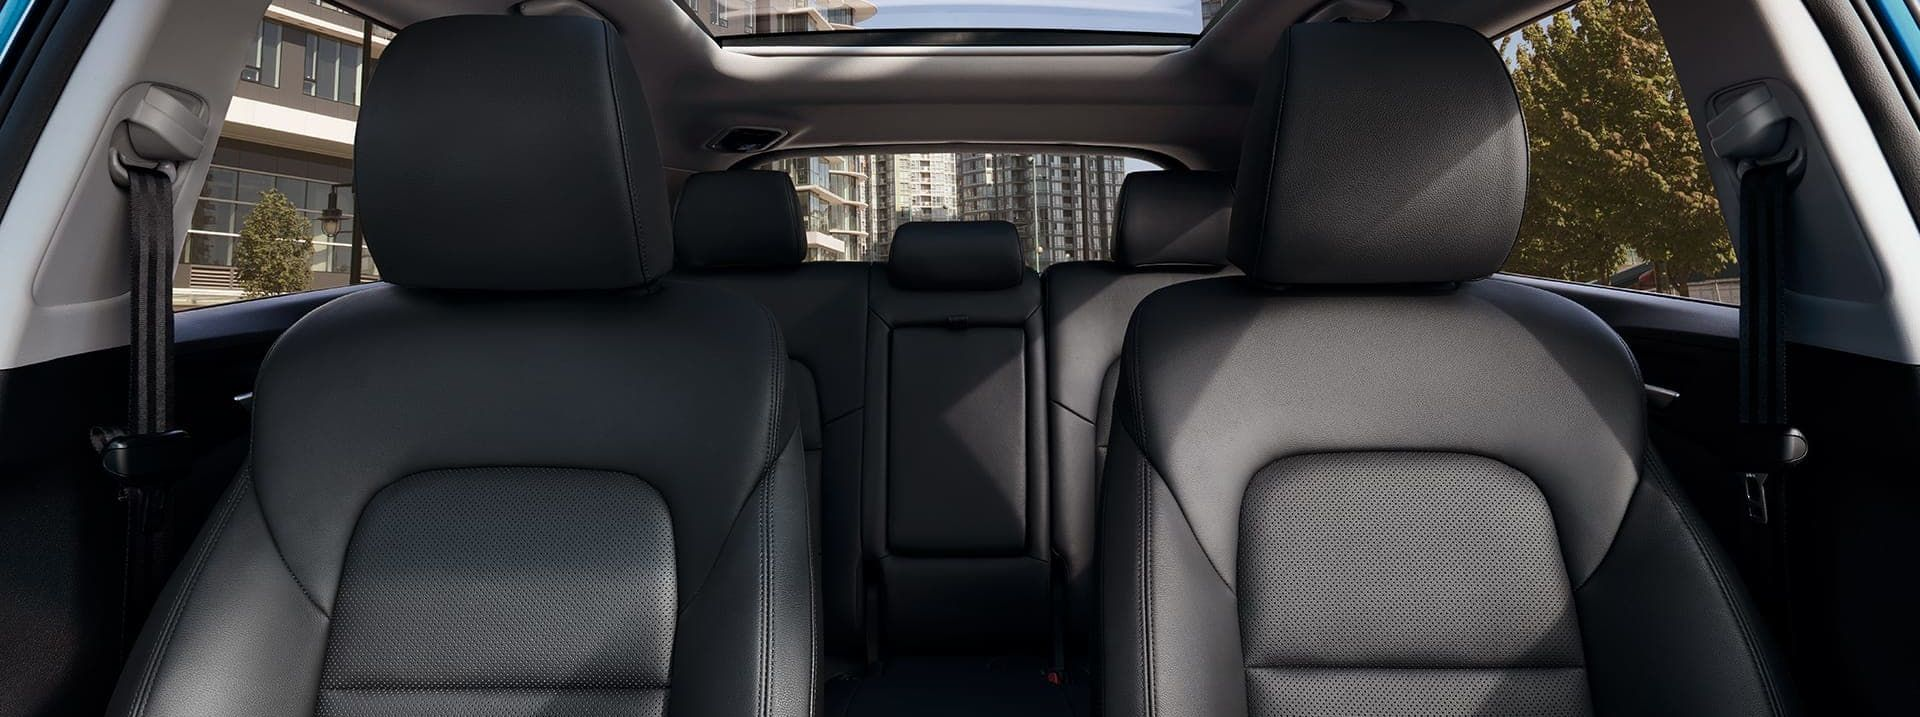 Ample Passenger Space in the 2019 Tucson